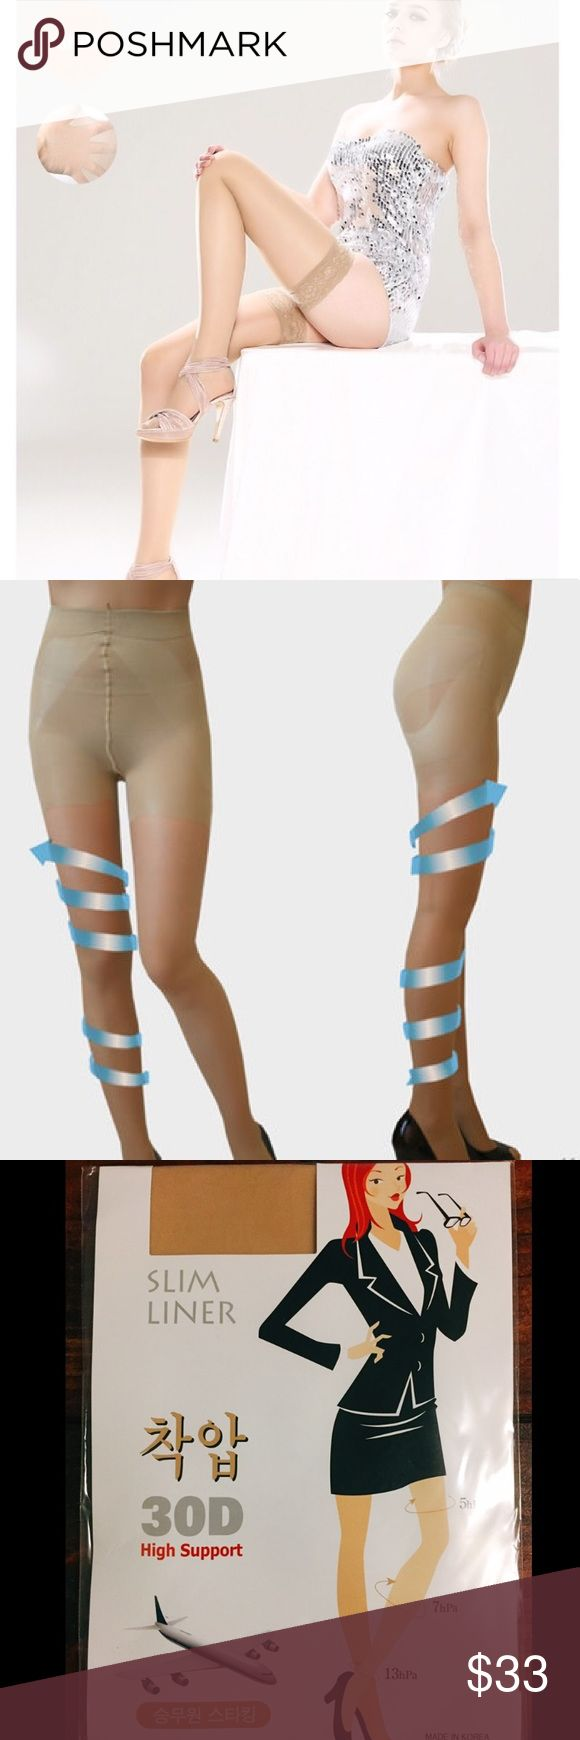 ideas about circulation socks stendhal new nude body shape compression pantyhose tights nwt